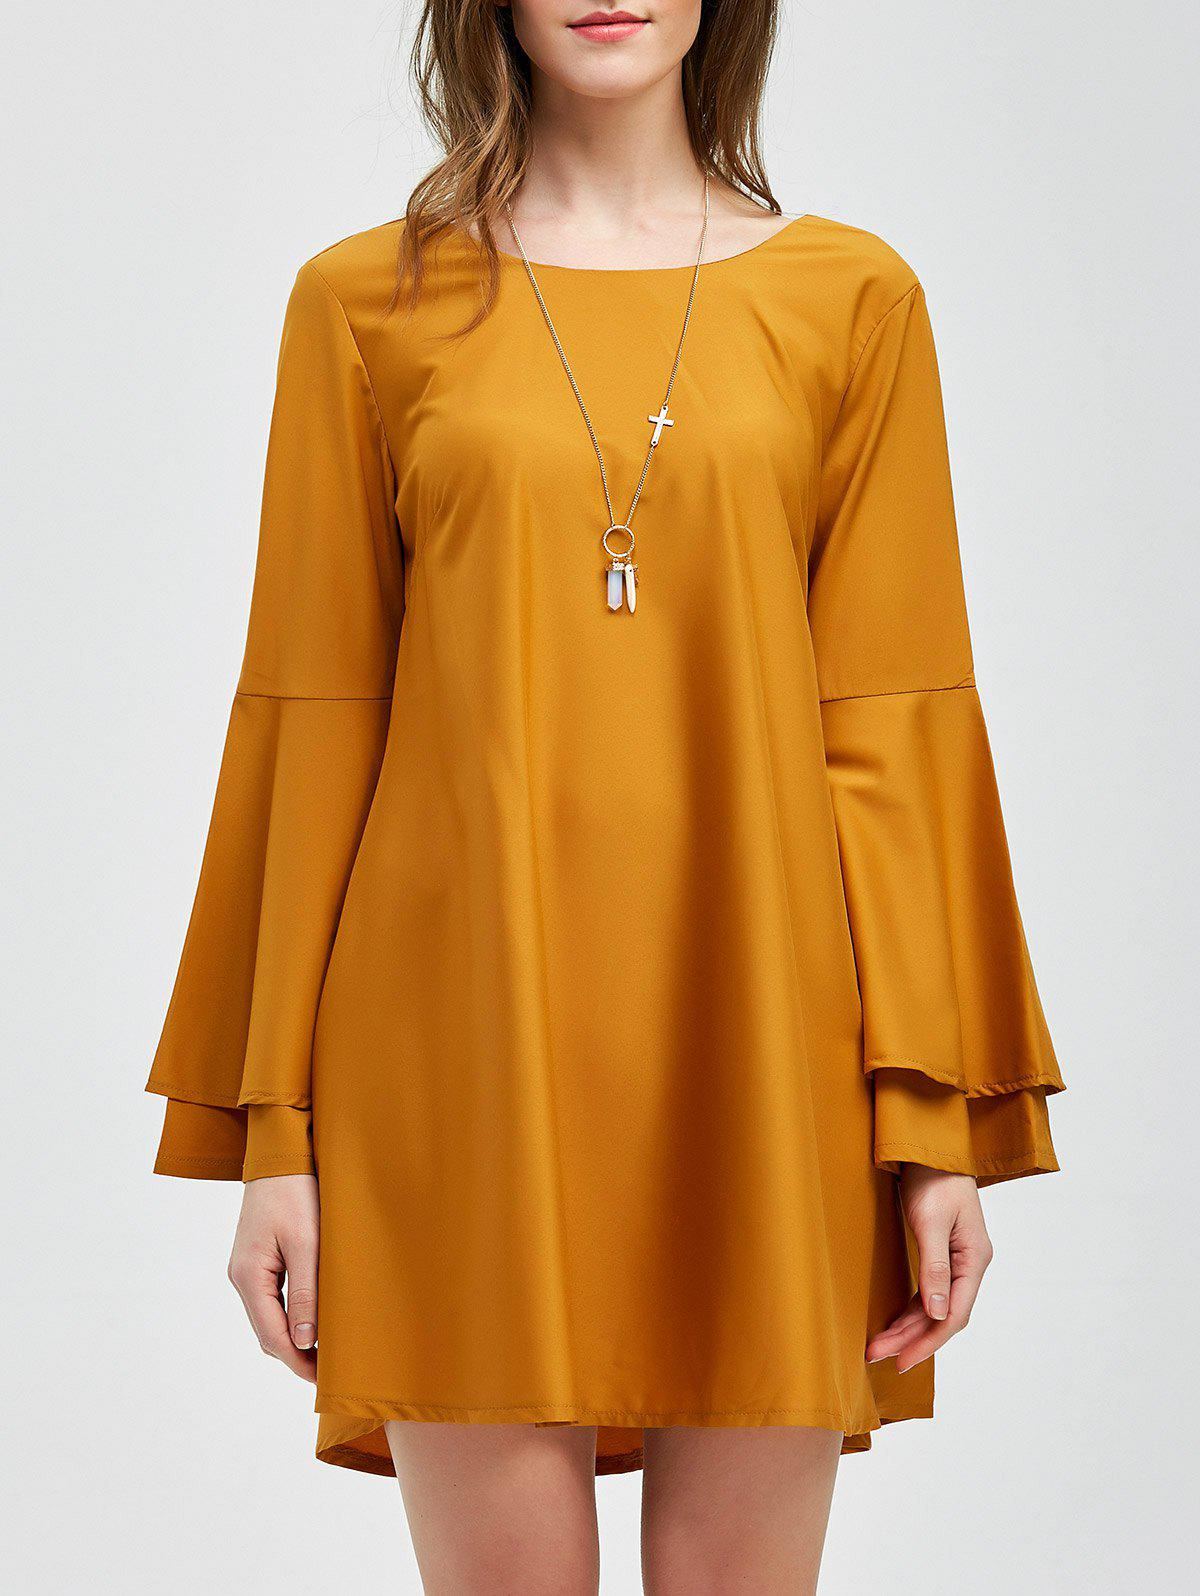 Store Lace-Up Layered Sleeve Smock Dress